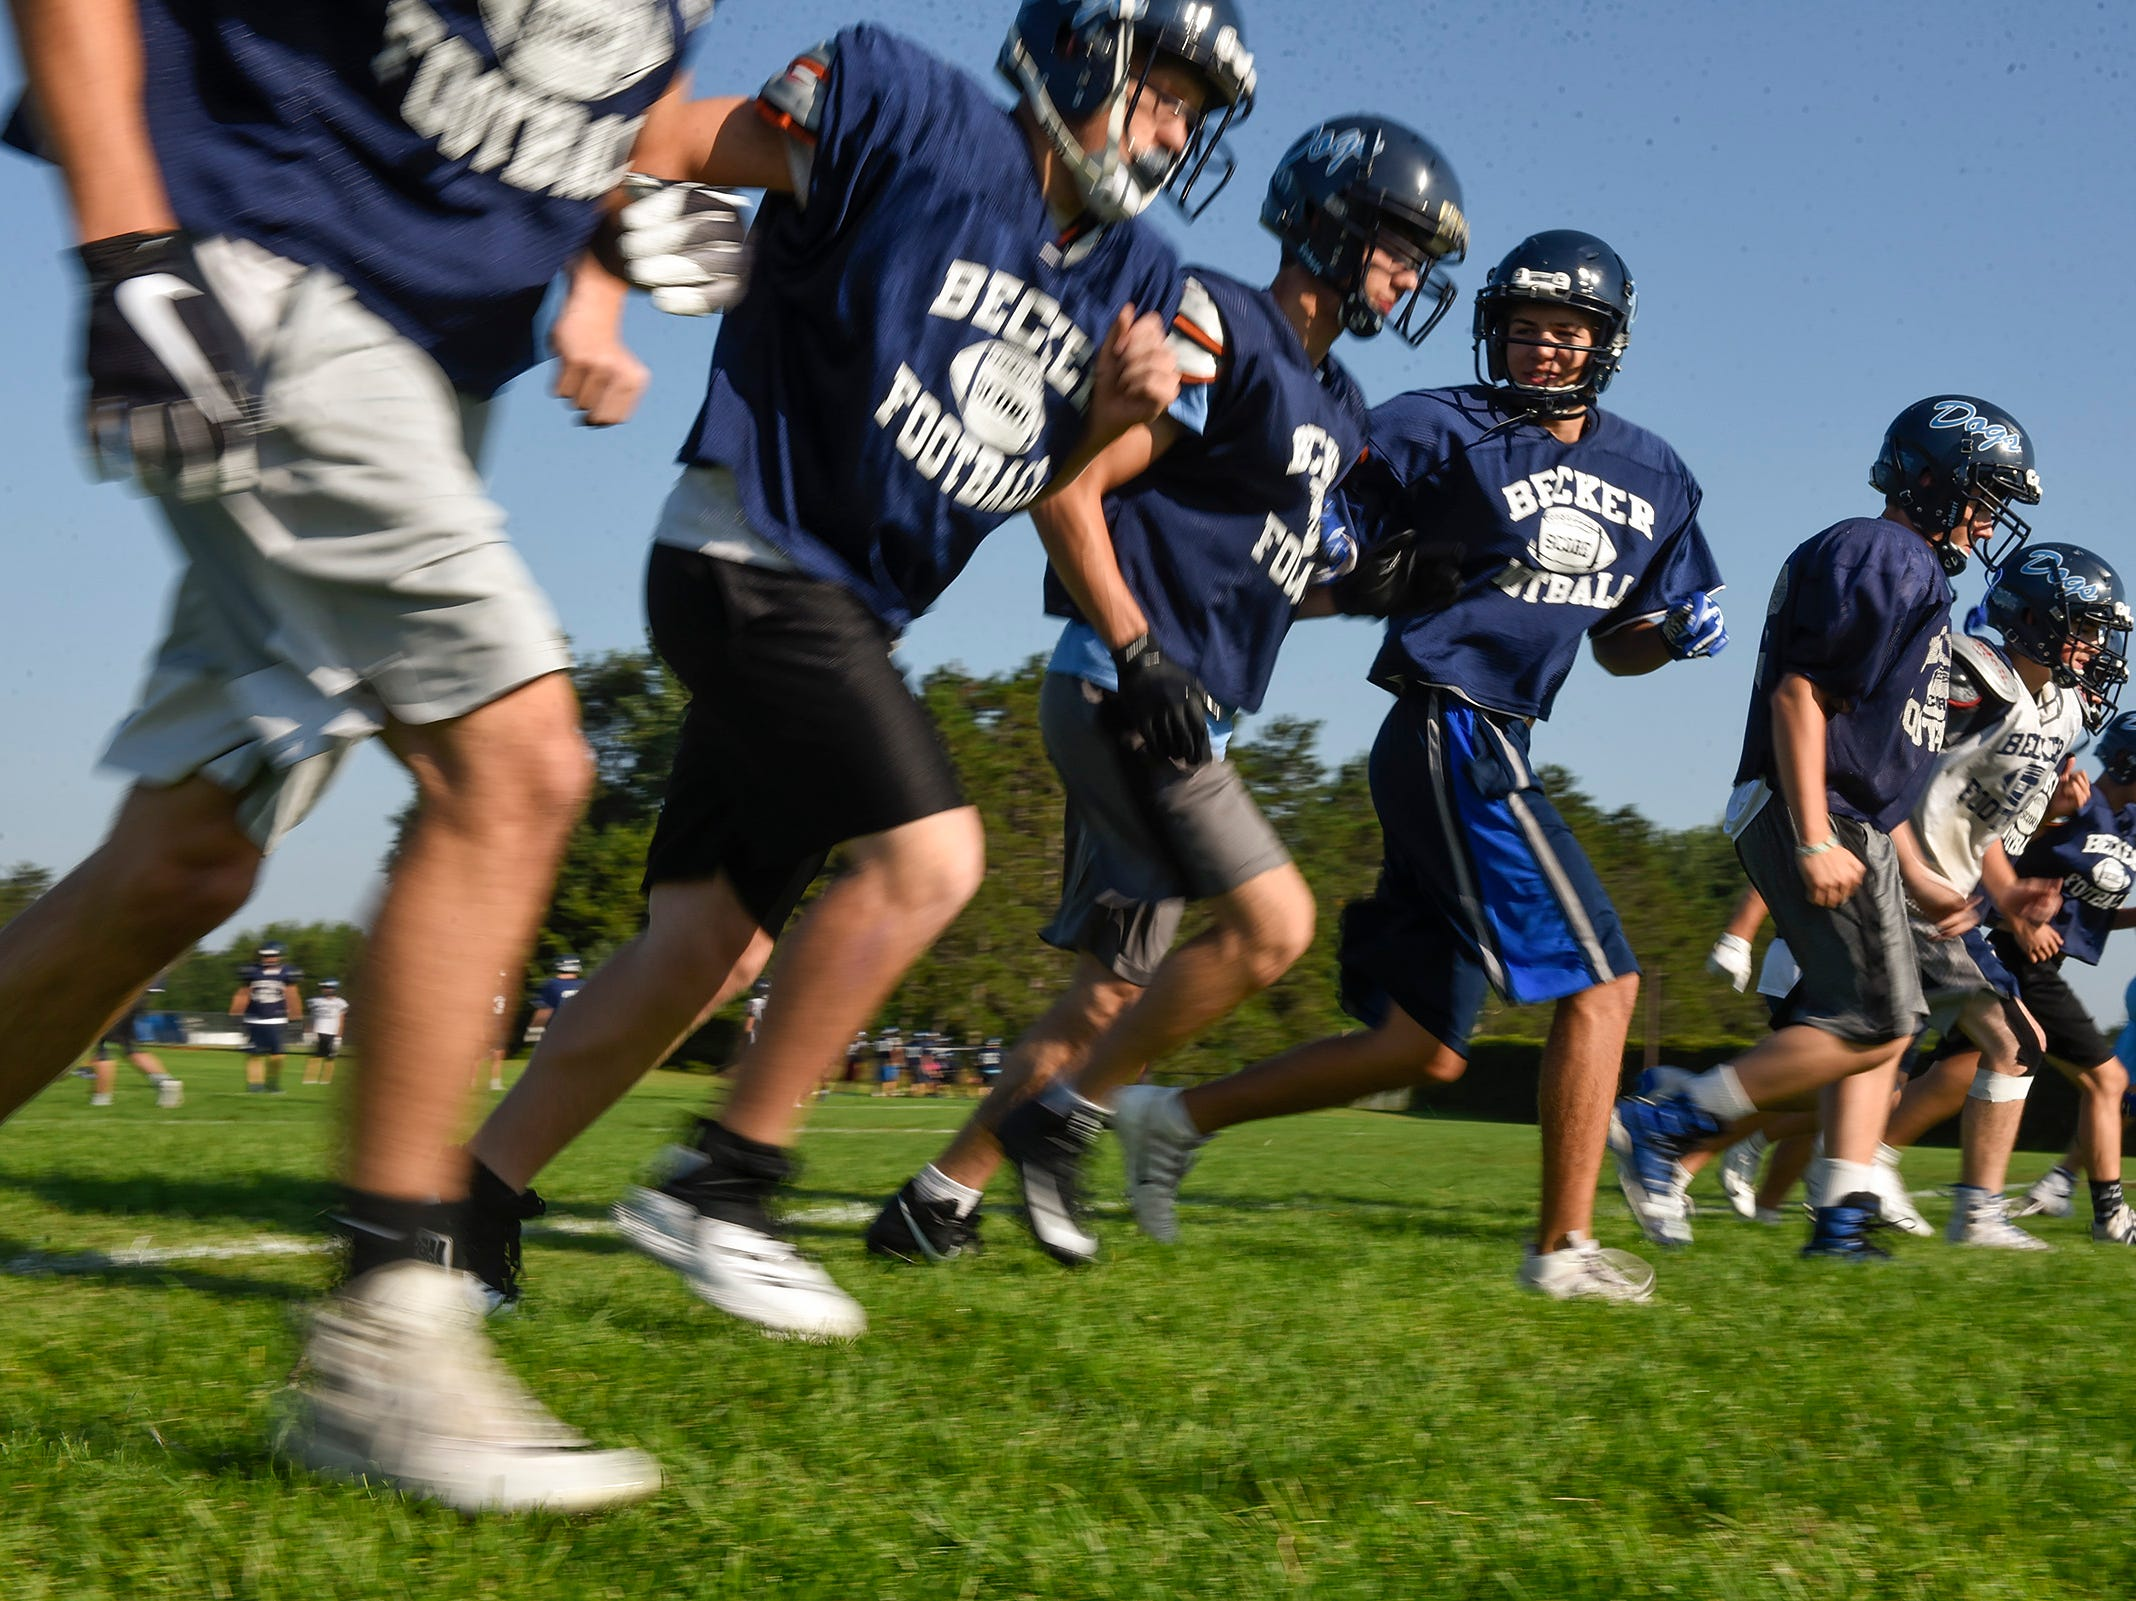 Becker players run conditioning sprints before a break Wednesday, Aug. 22, at the Becker High School.